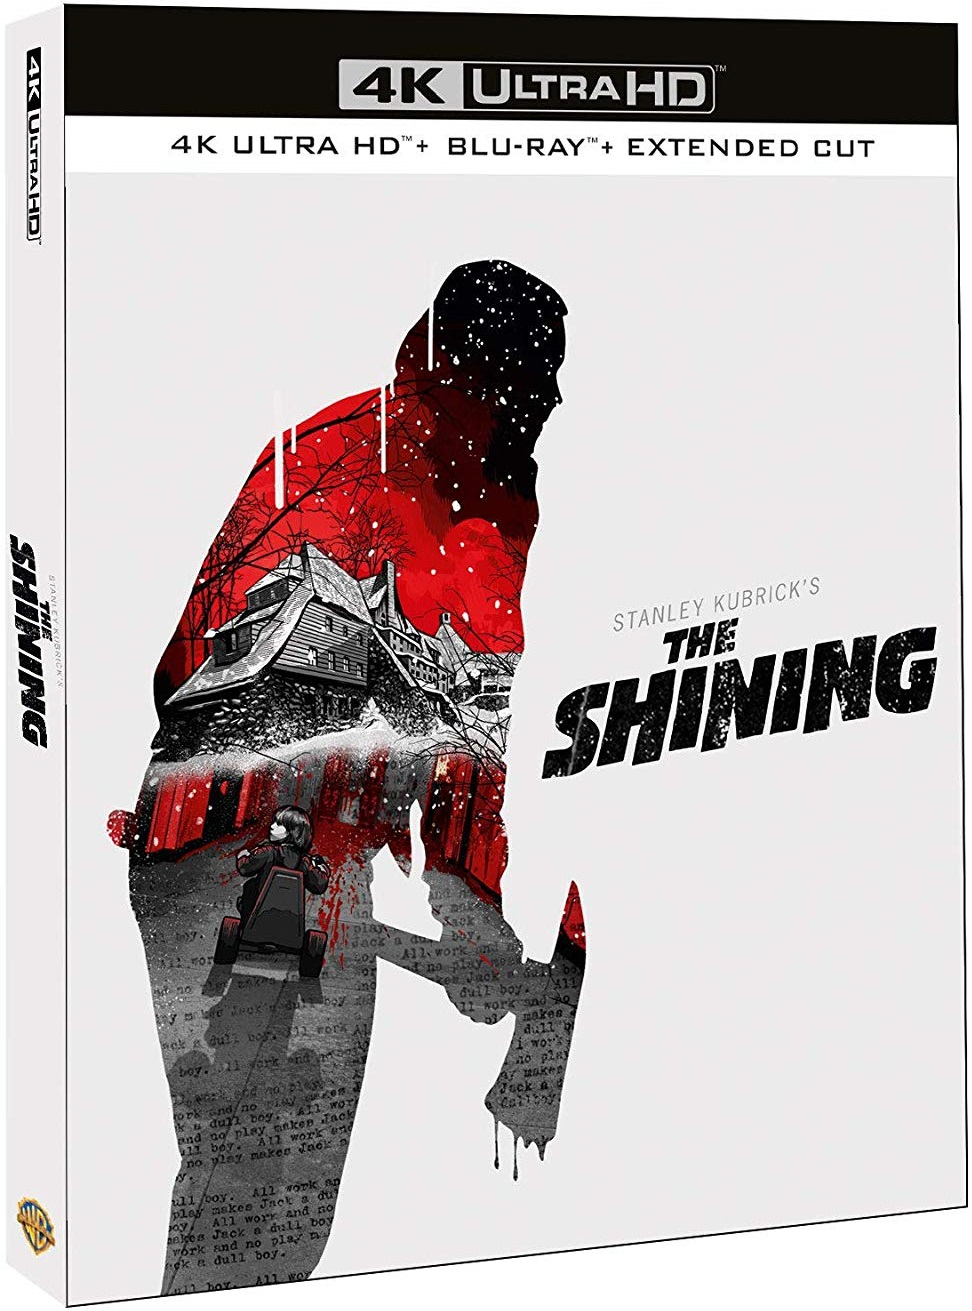 The Shining: Extended Cut UK 4K Blu-Ray